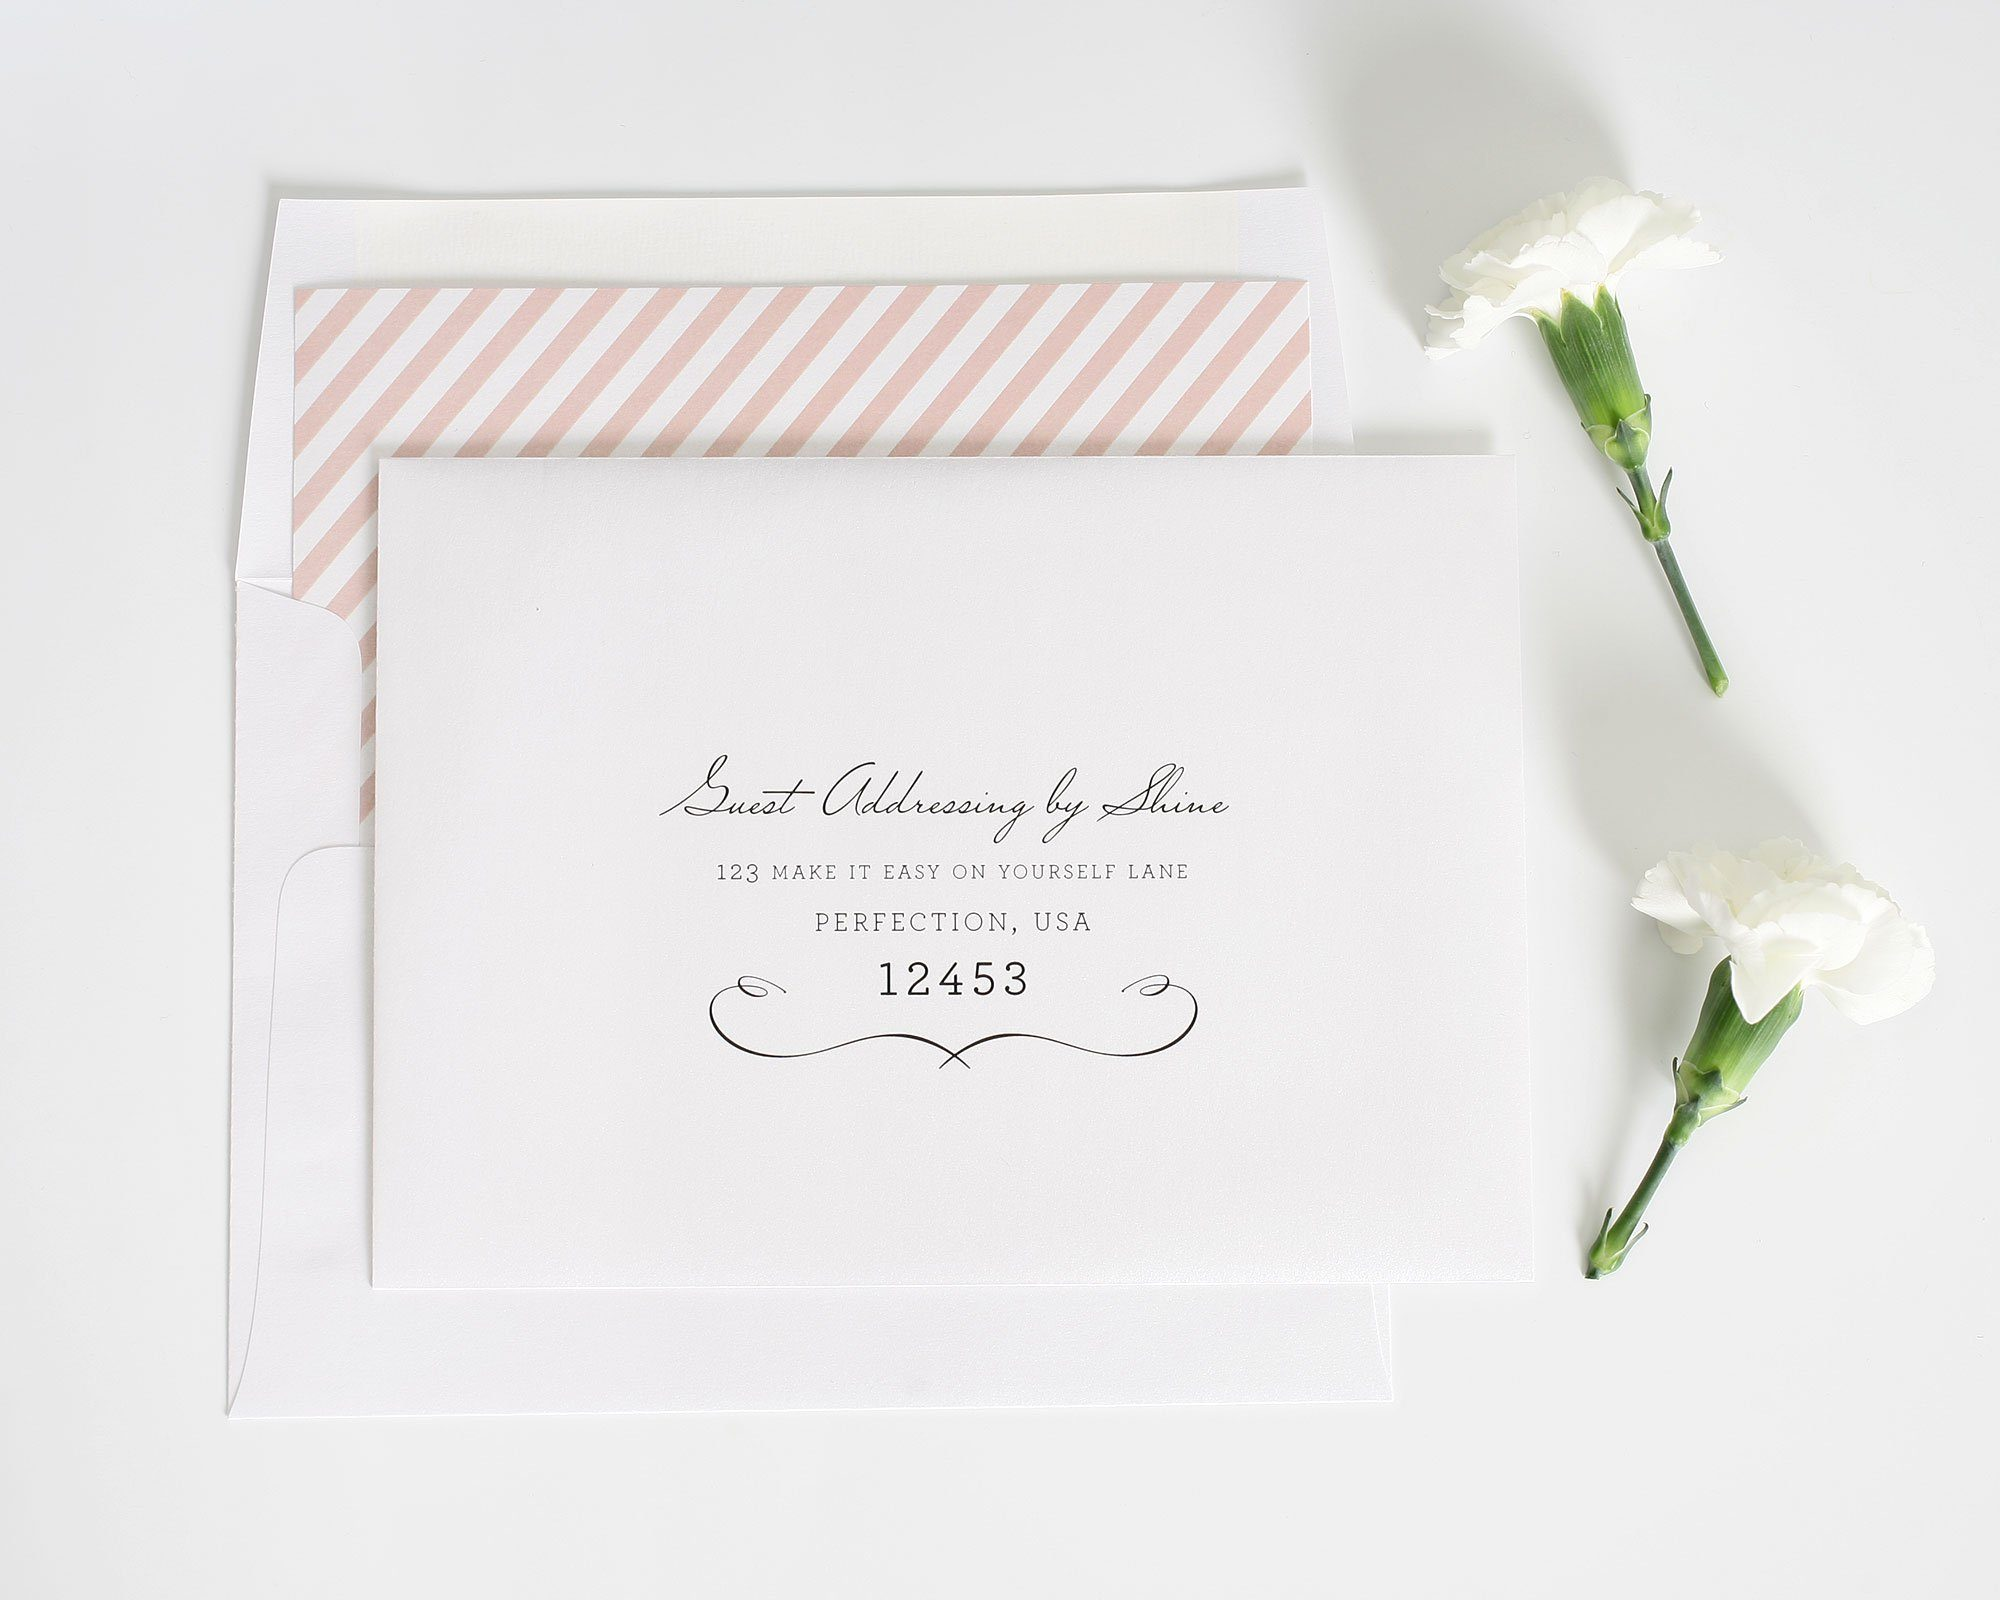 Vintage chic wedding invitations in blush